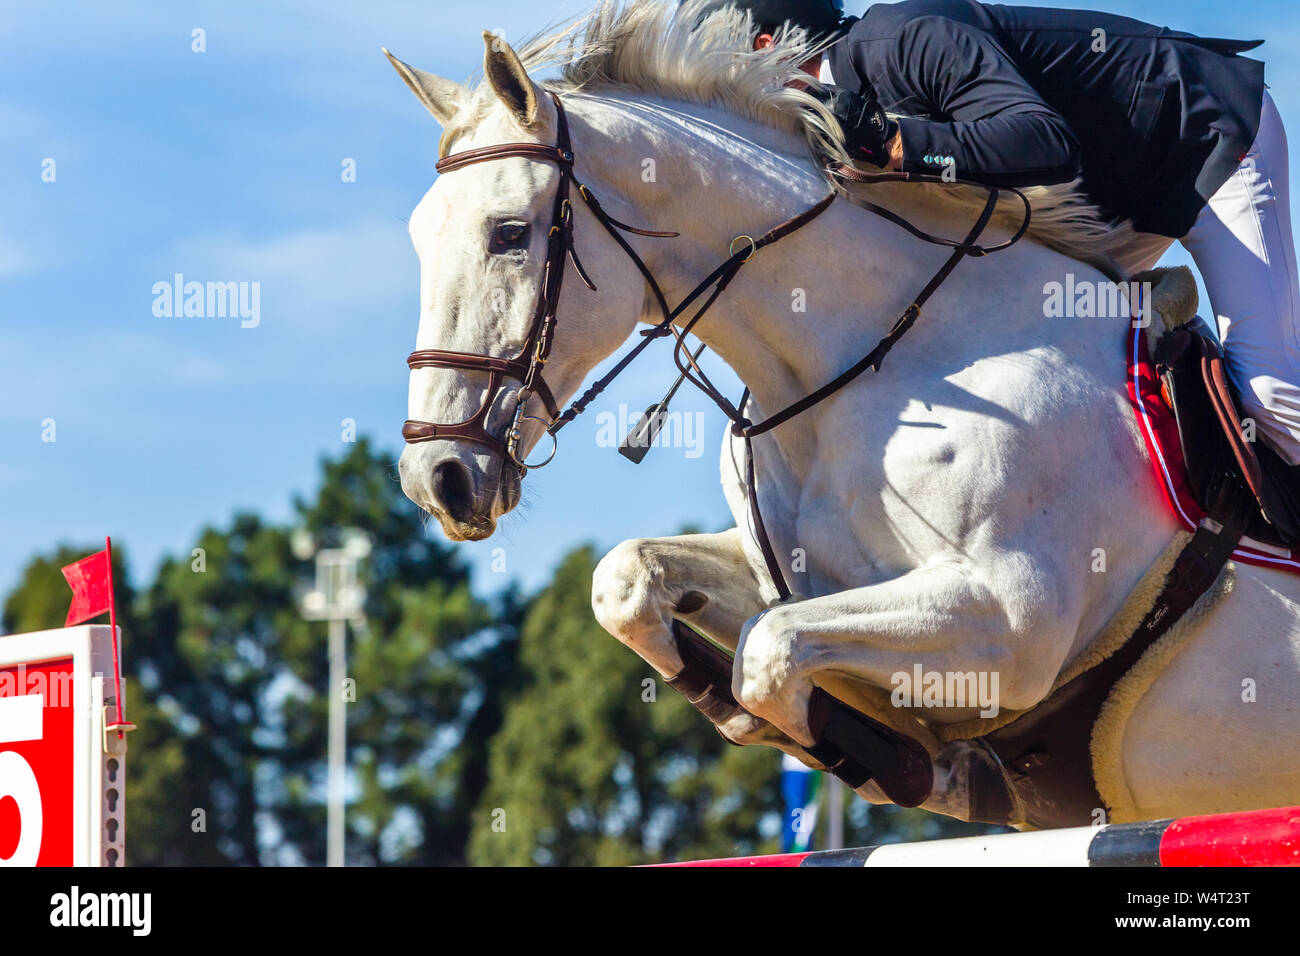 Equestrian Show Jumping Gray White Horse Unrecognizable Rider Closeup Jumping Action Over Gate Poles With Blue Sky Stock Photo Alamy